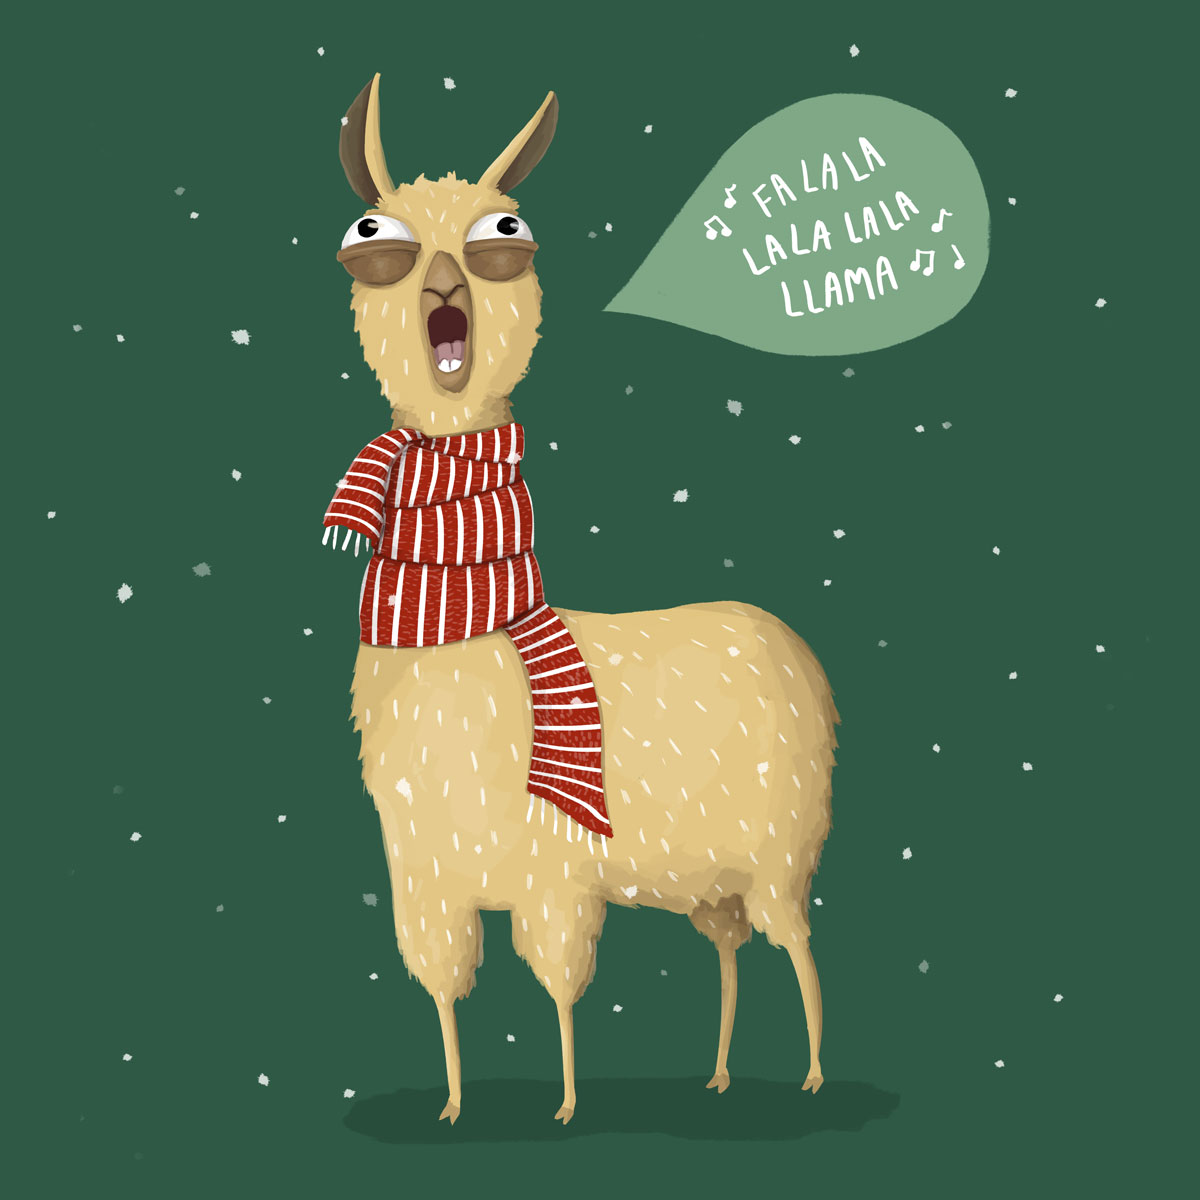 llama in a red scarf caroling with green background and snow falling